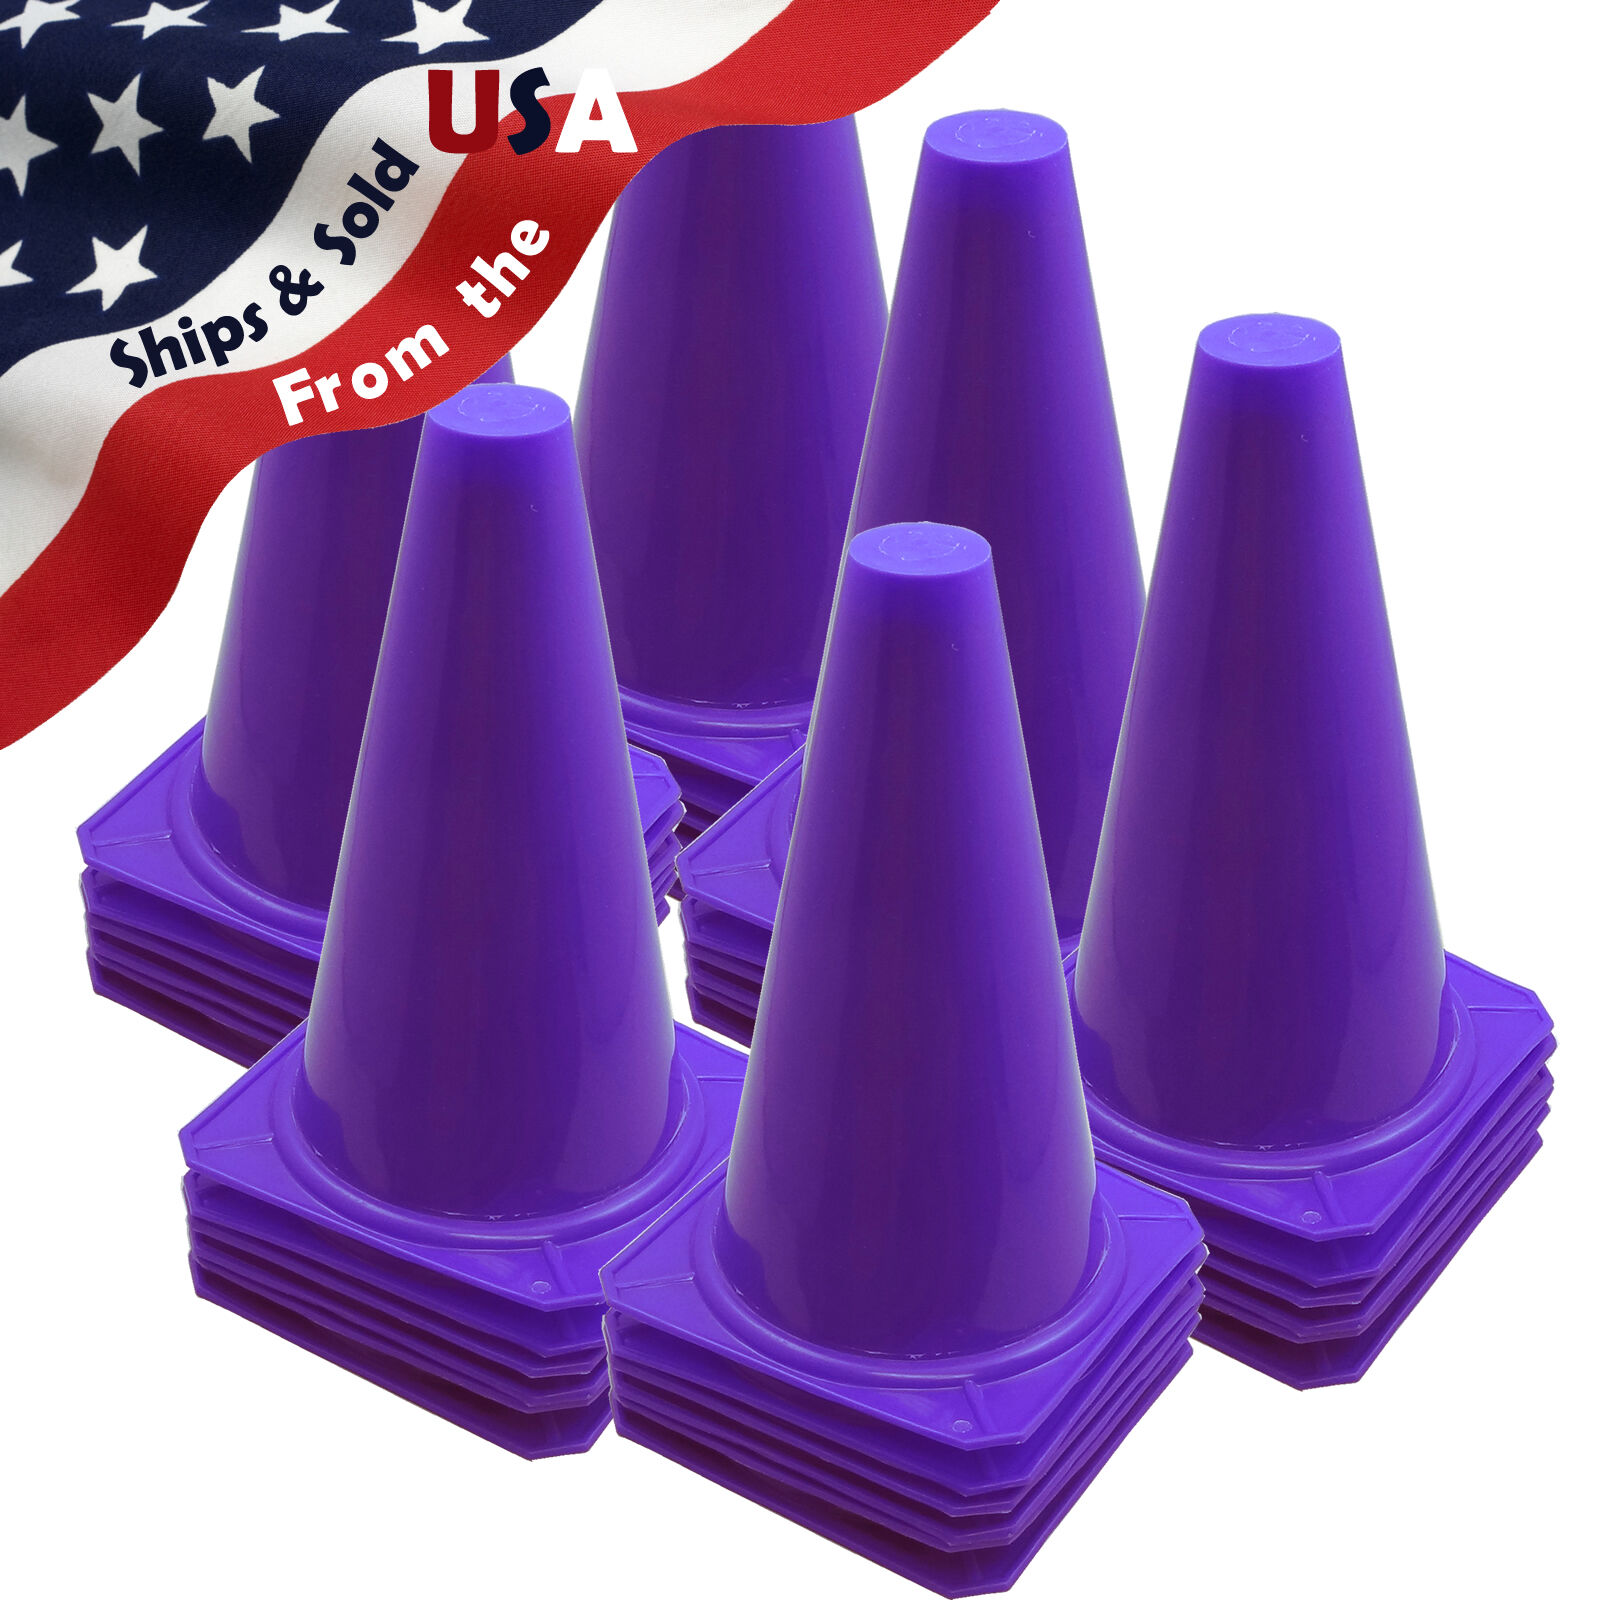 NEW  9  Tall PURPLE CONES Sports Training Safety Cone Horse Training Qty 36